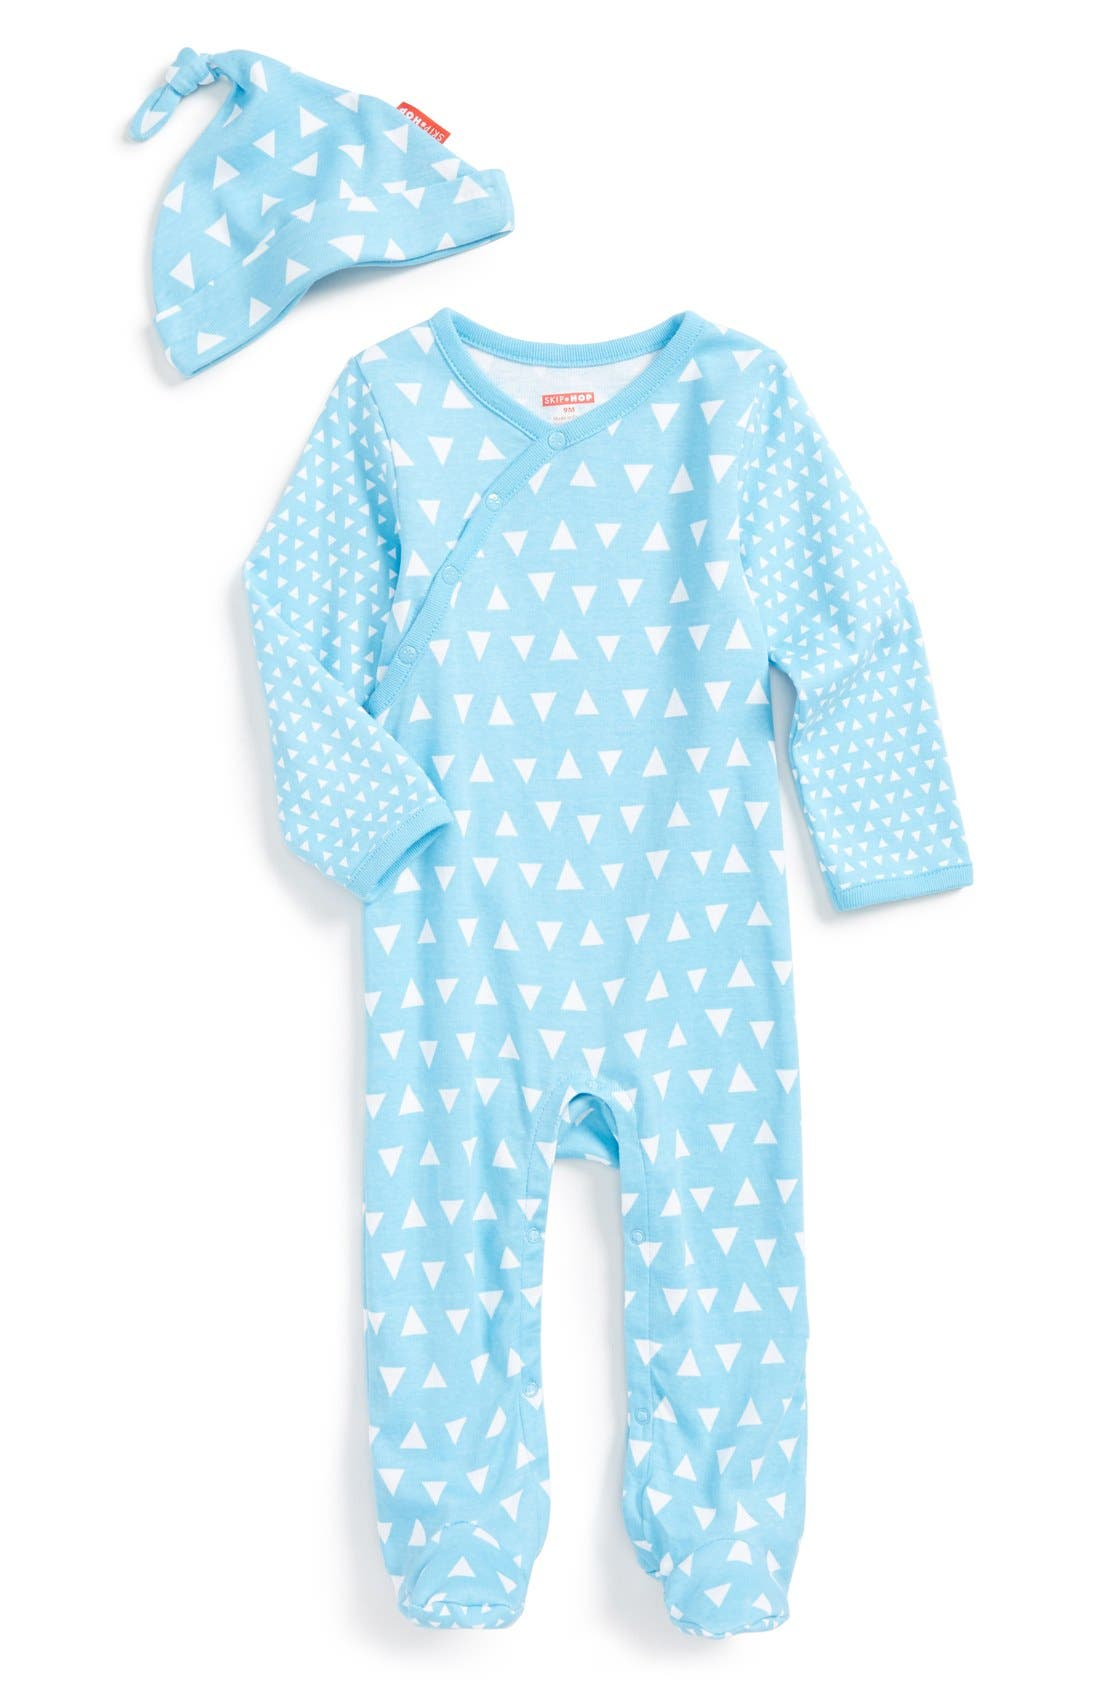 SkipHop Baby Boys Pop Prints Loungewear Set-Triangles